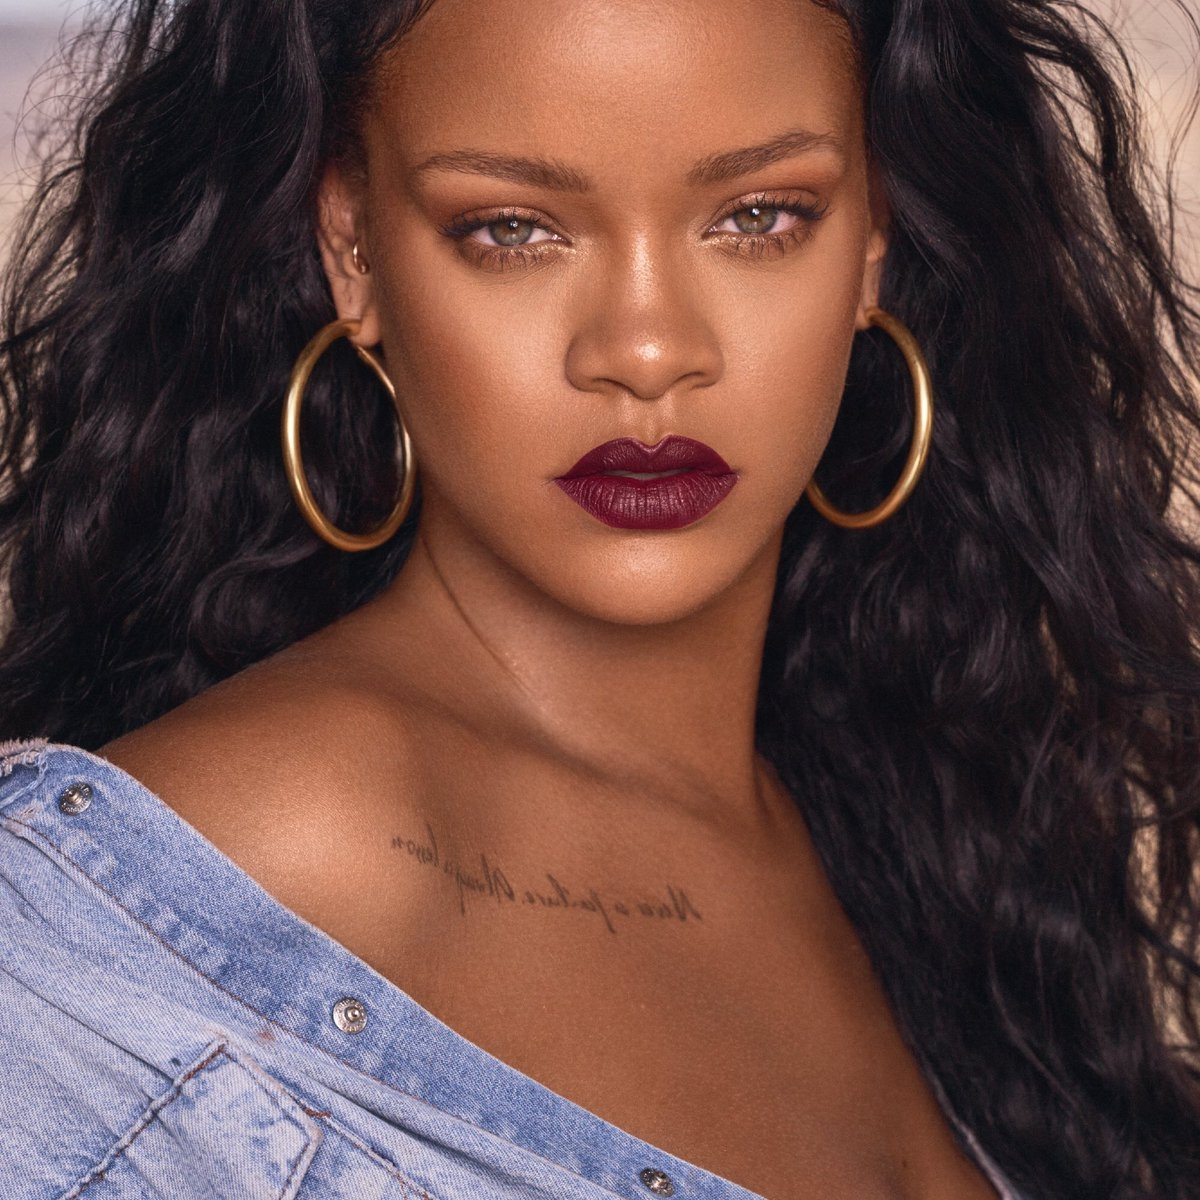 Rihanna is launching a new lingerie line, Savage X Fenty